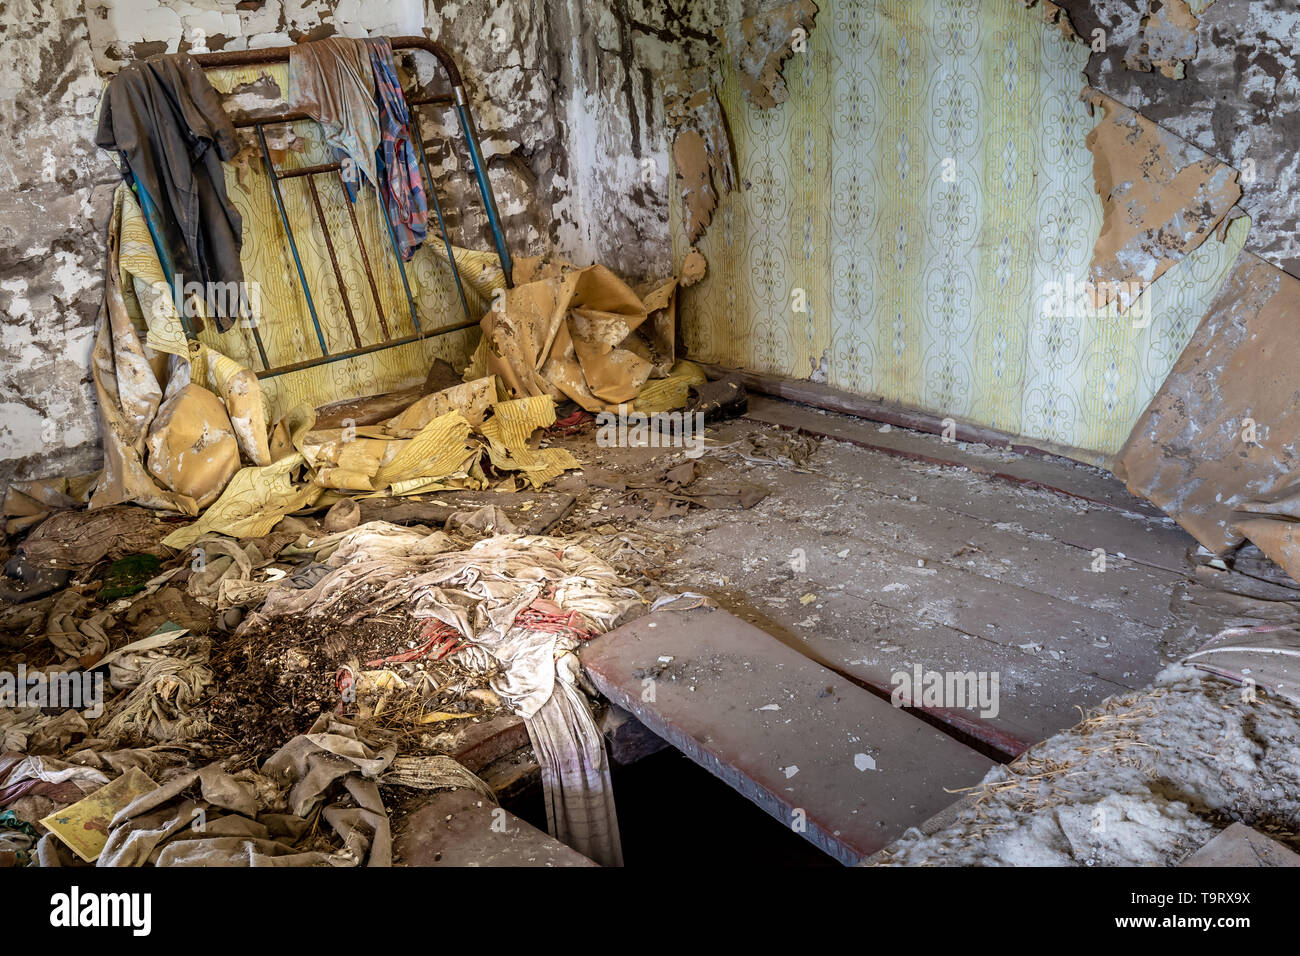 Interior of an abandoned house in Chernobyl exclusion zone in Belarus - Stock Image